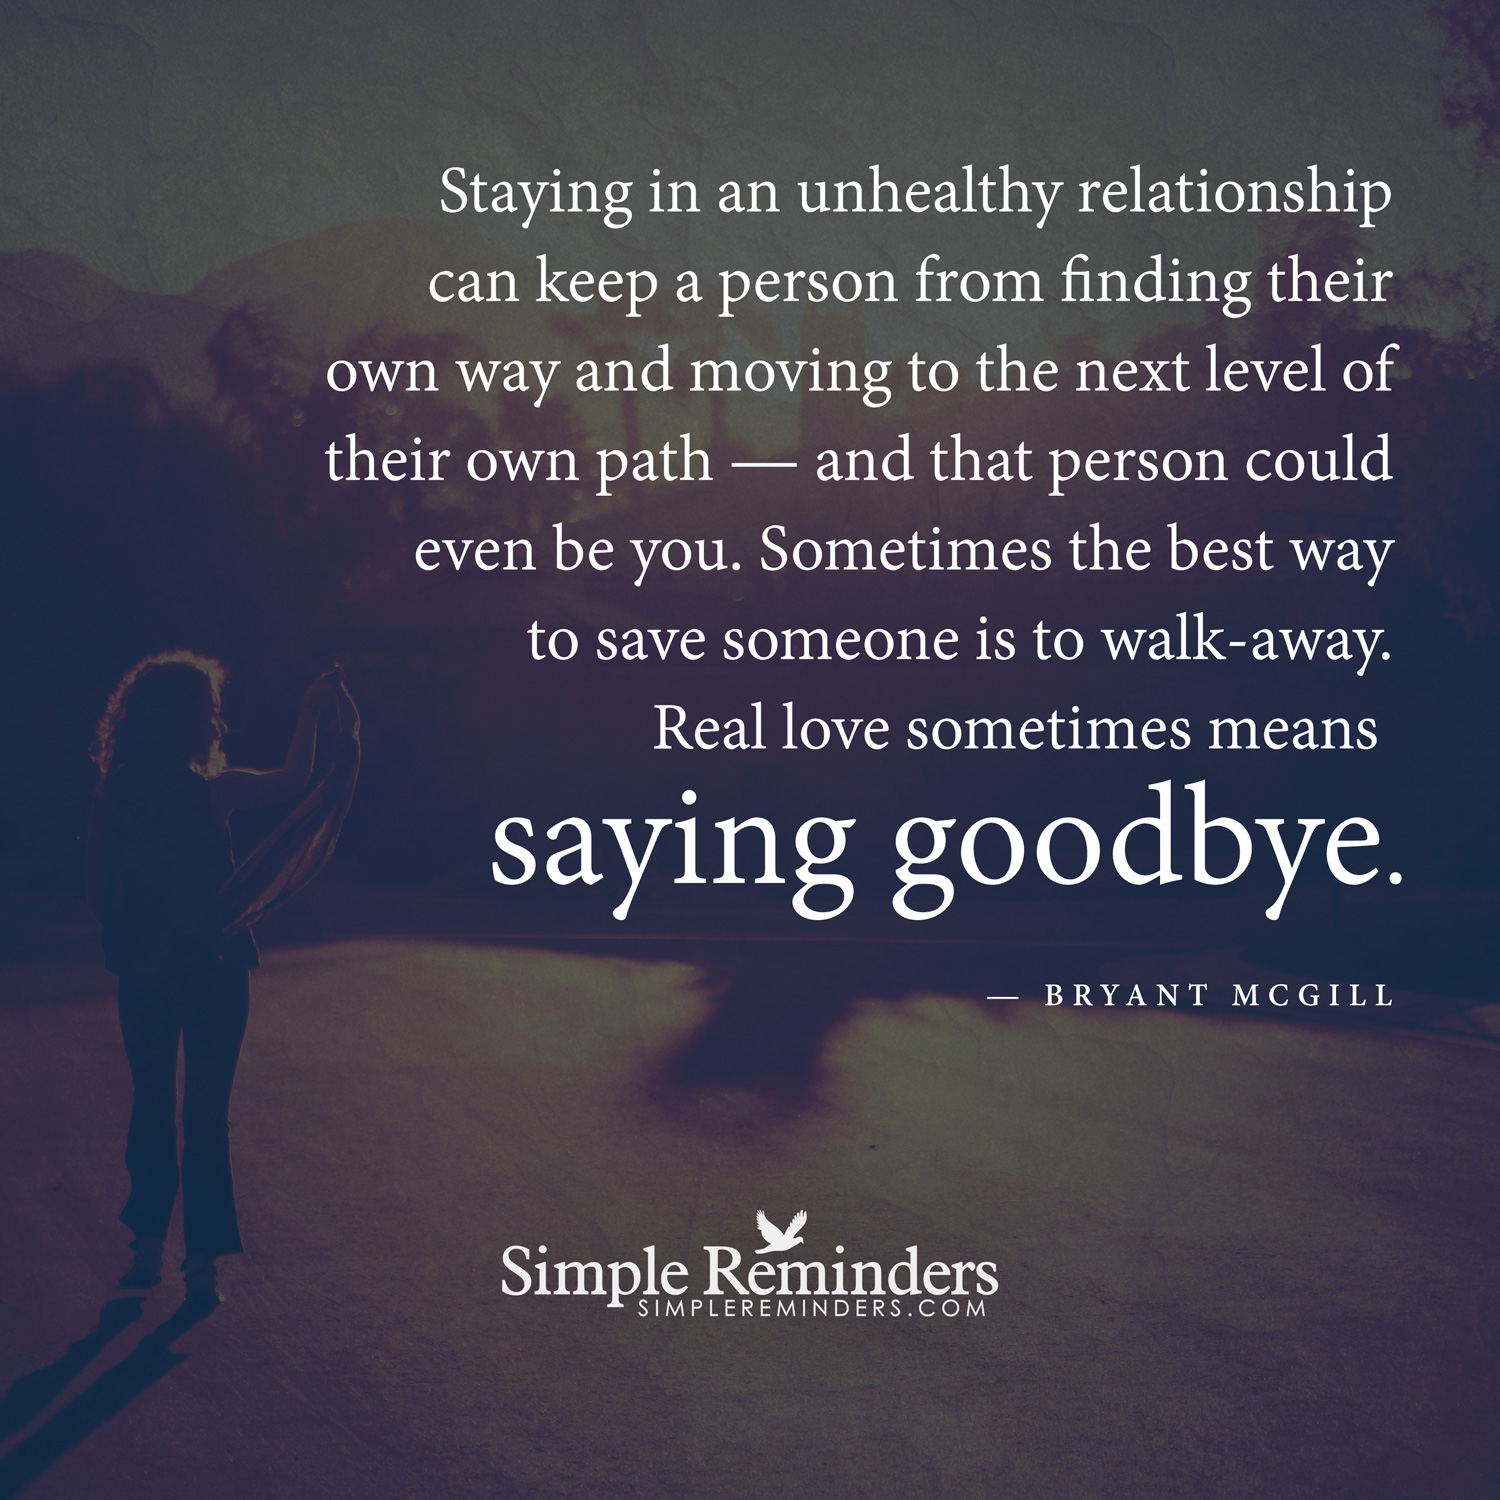 Quotes About Love Relationships: Unhealthy Relationships Quotes. QuotesGram